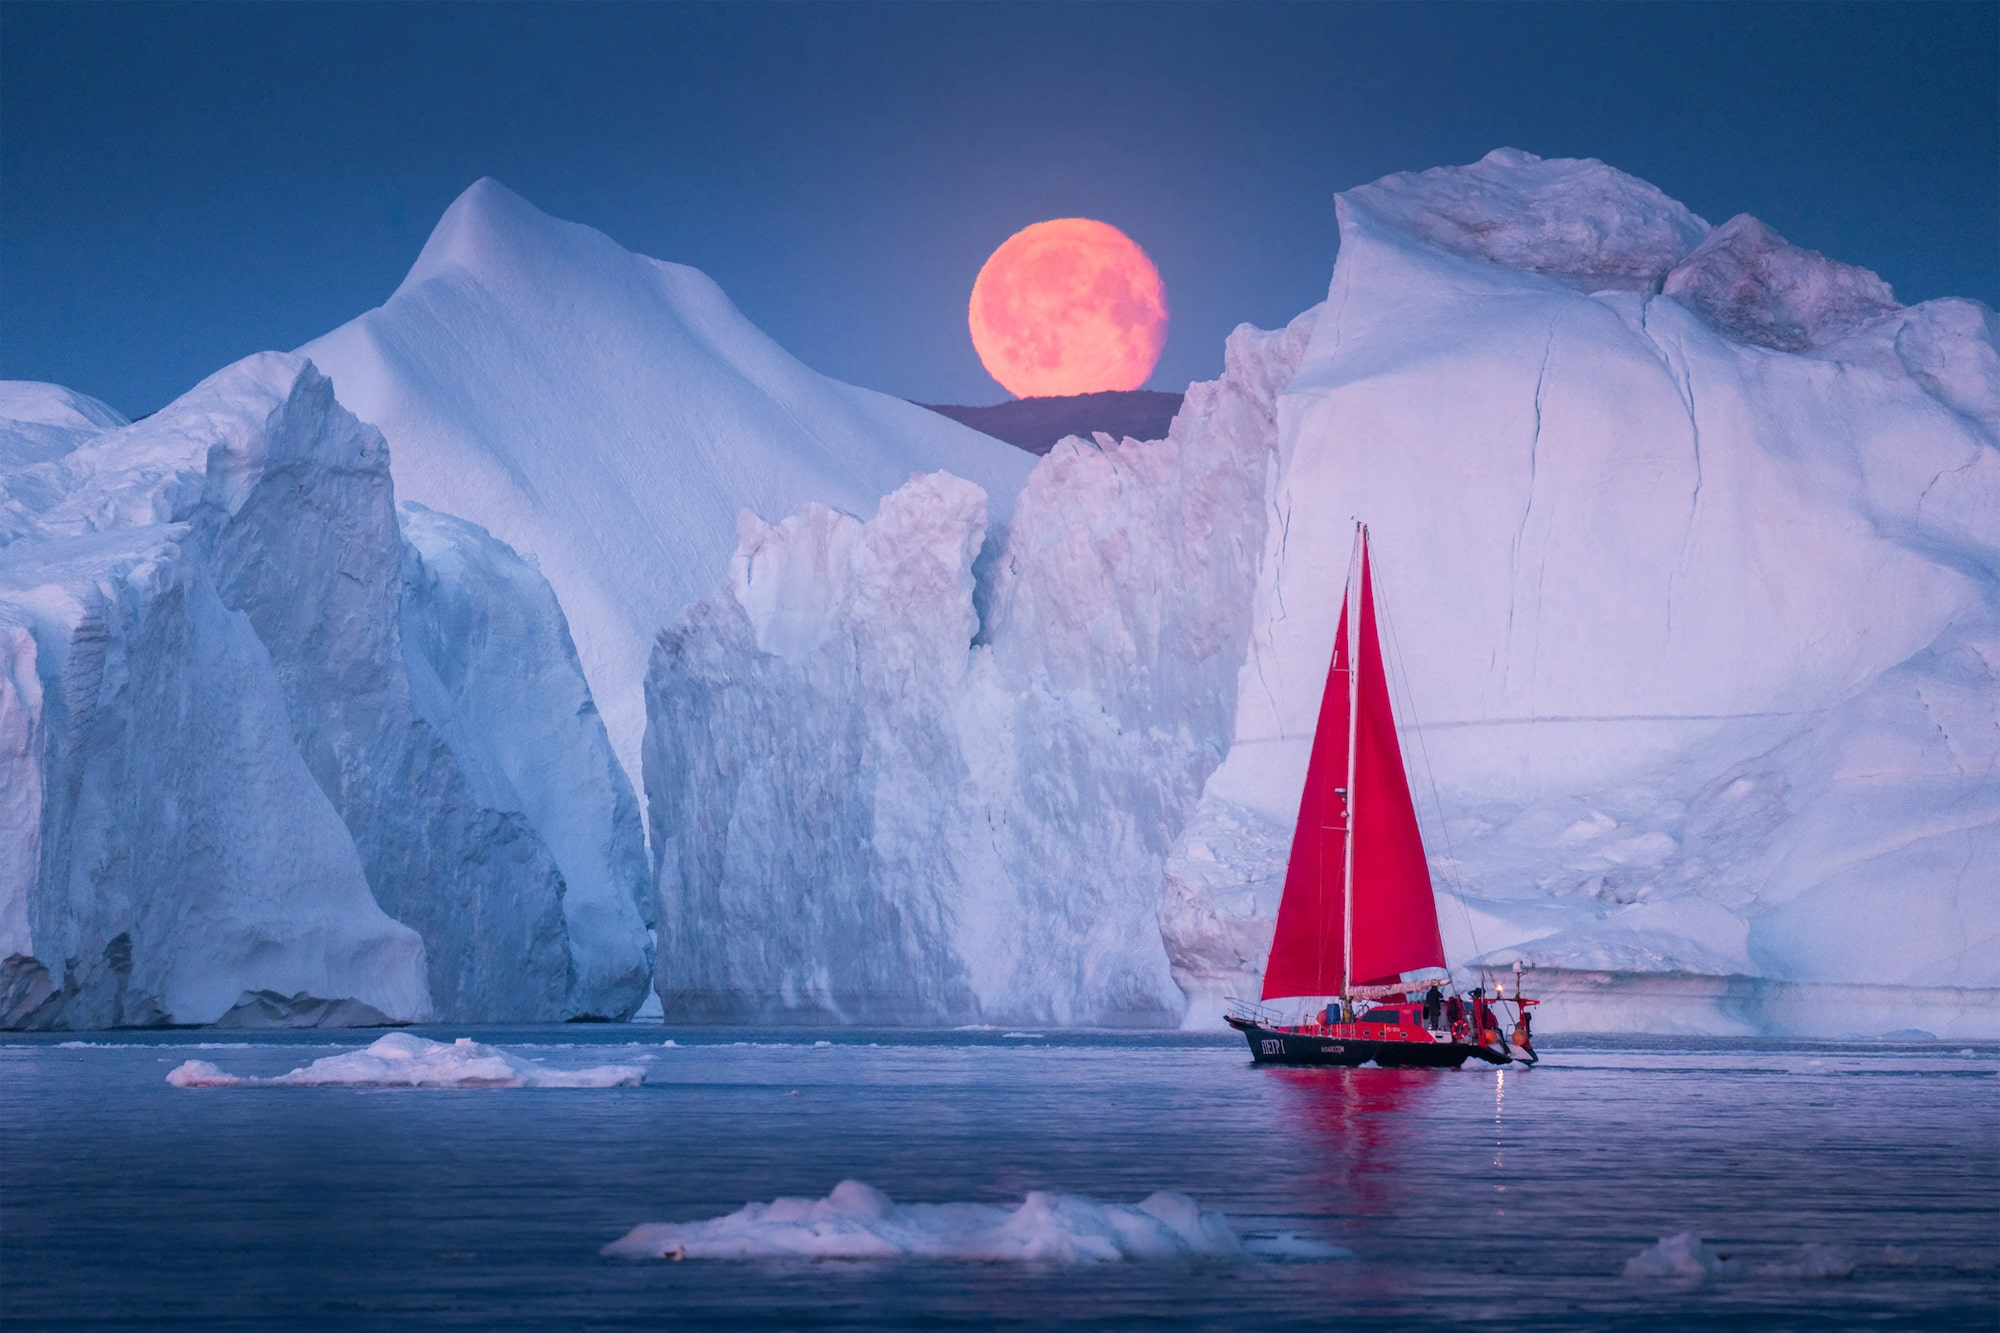 albert dros sony alpha A7RM4 the moon rises above an iceberg with a red sailed ship in the foreground